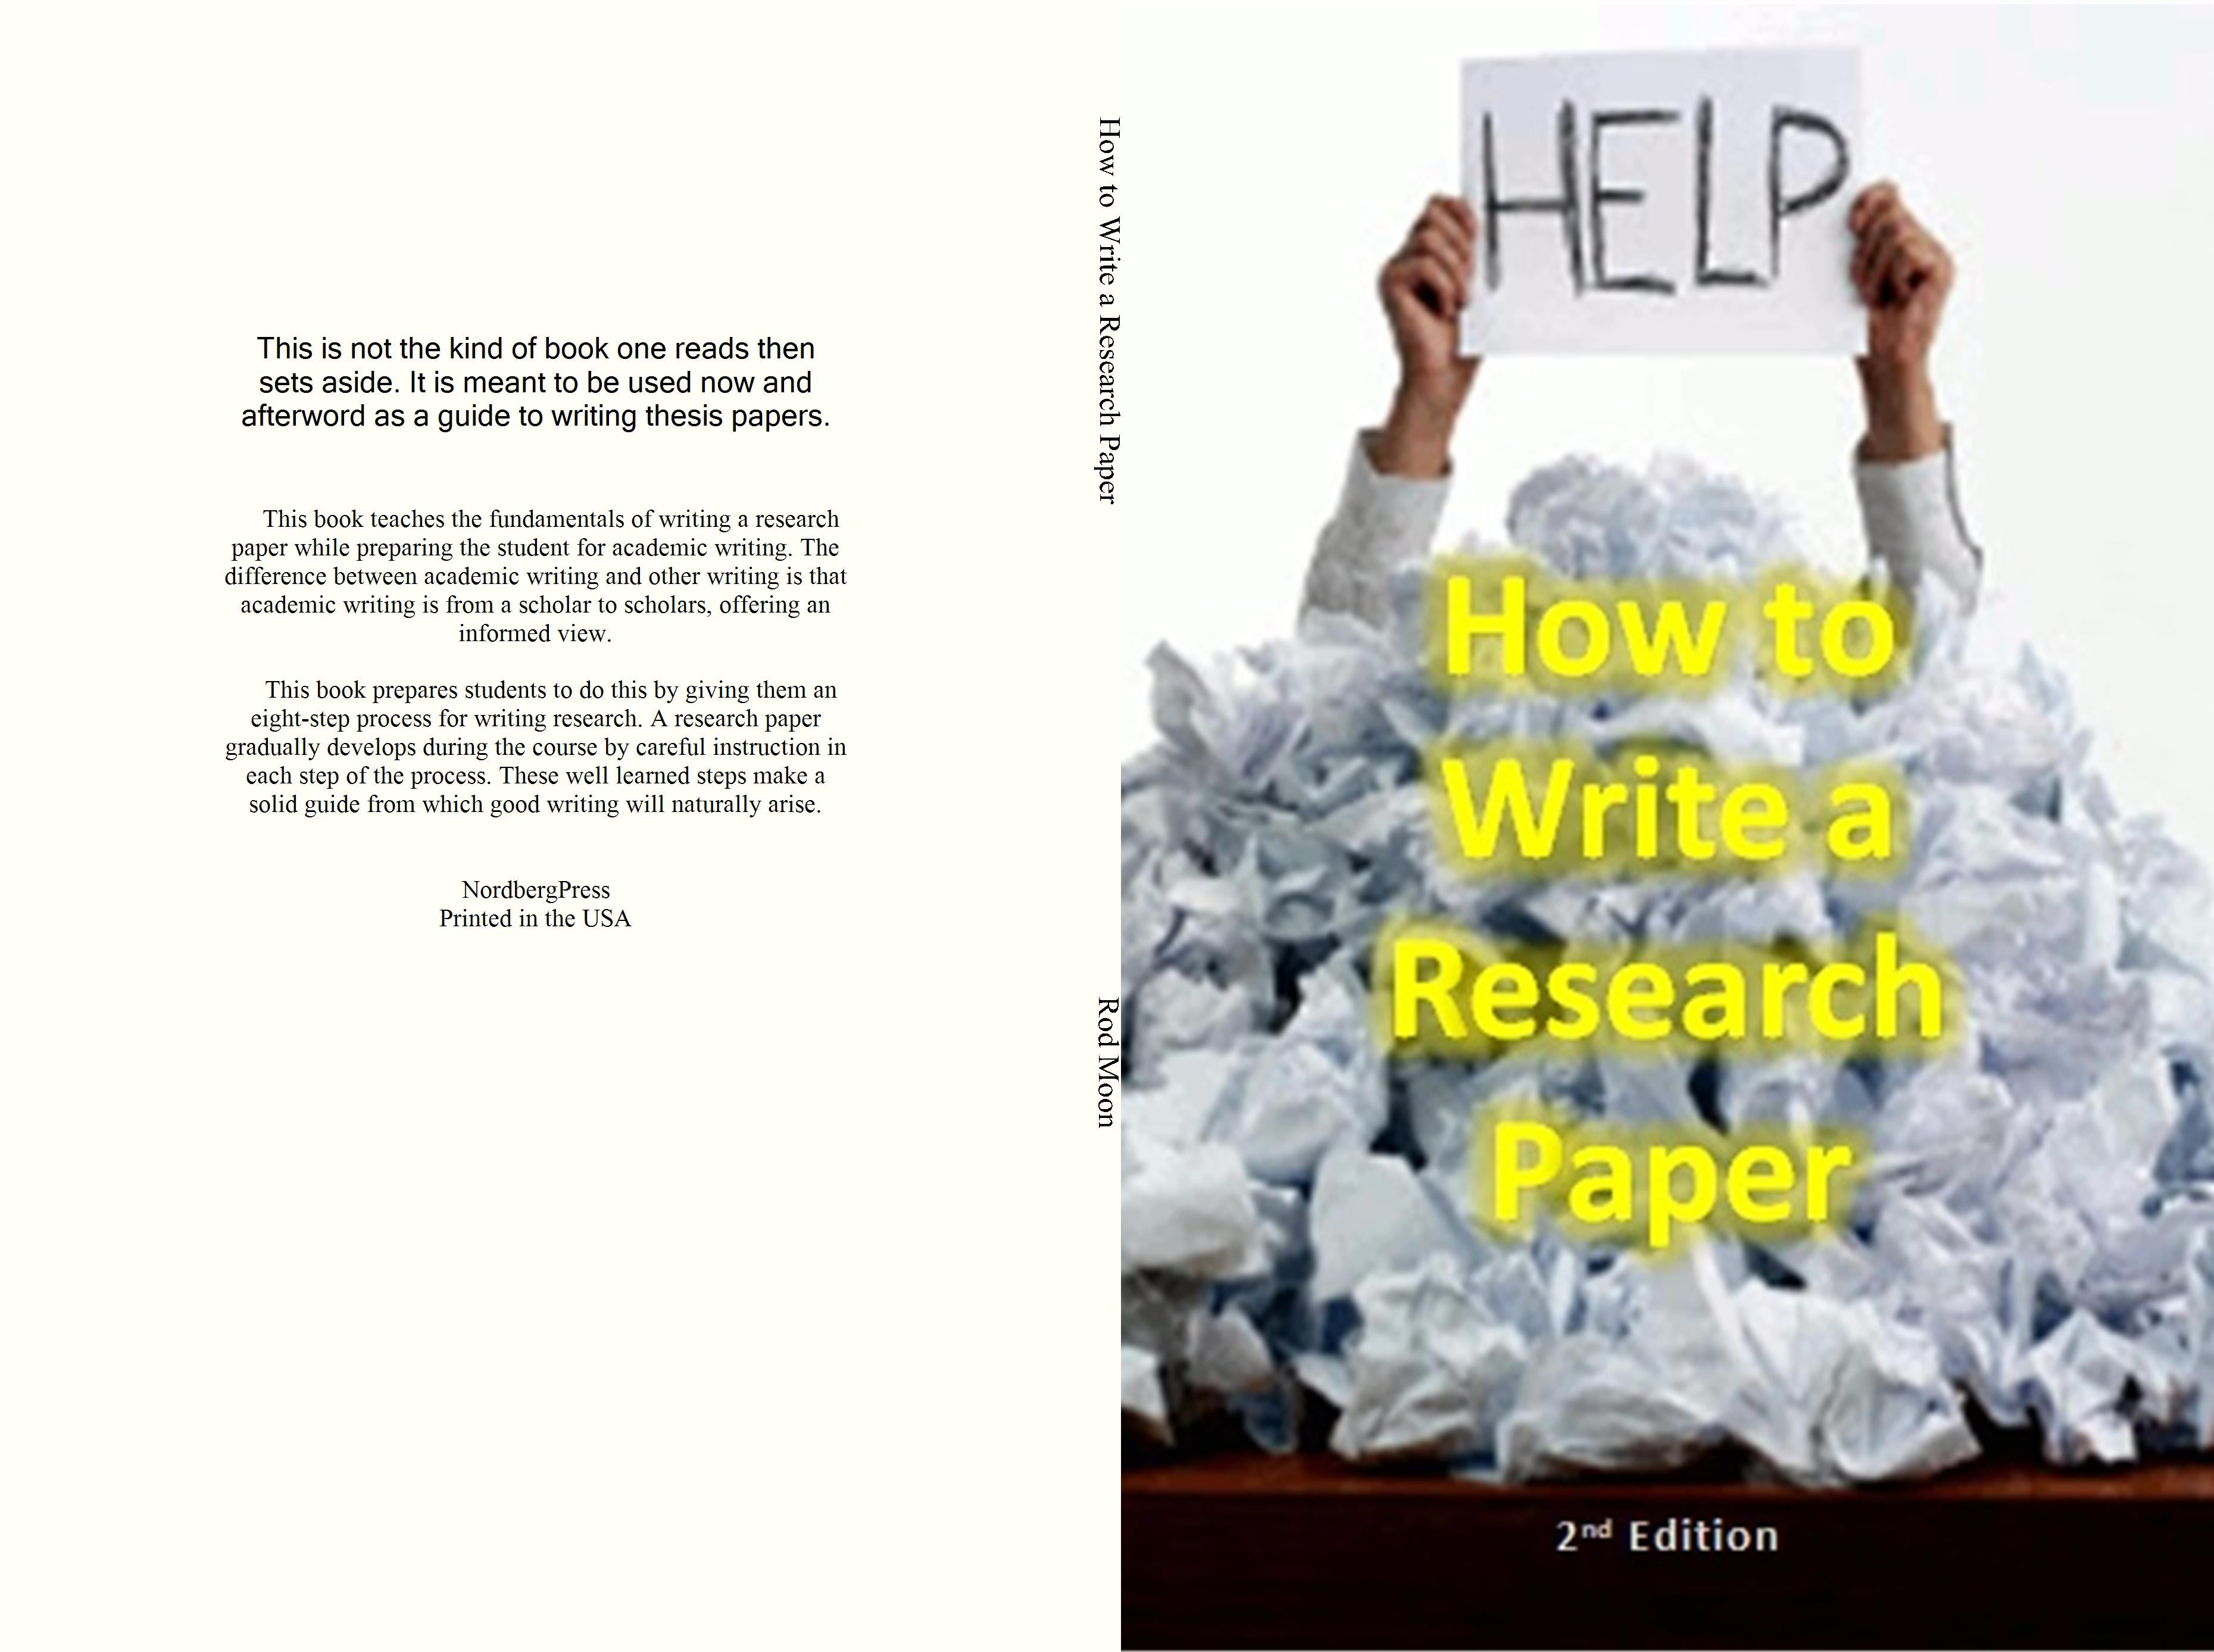 How to Write a Research Paper cover image